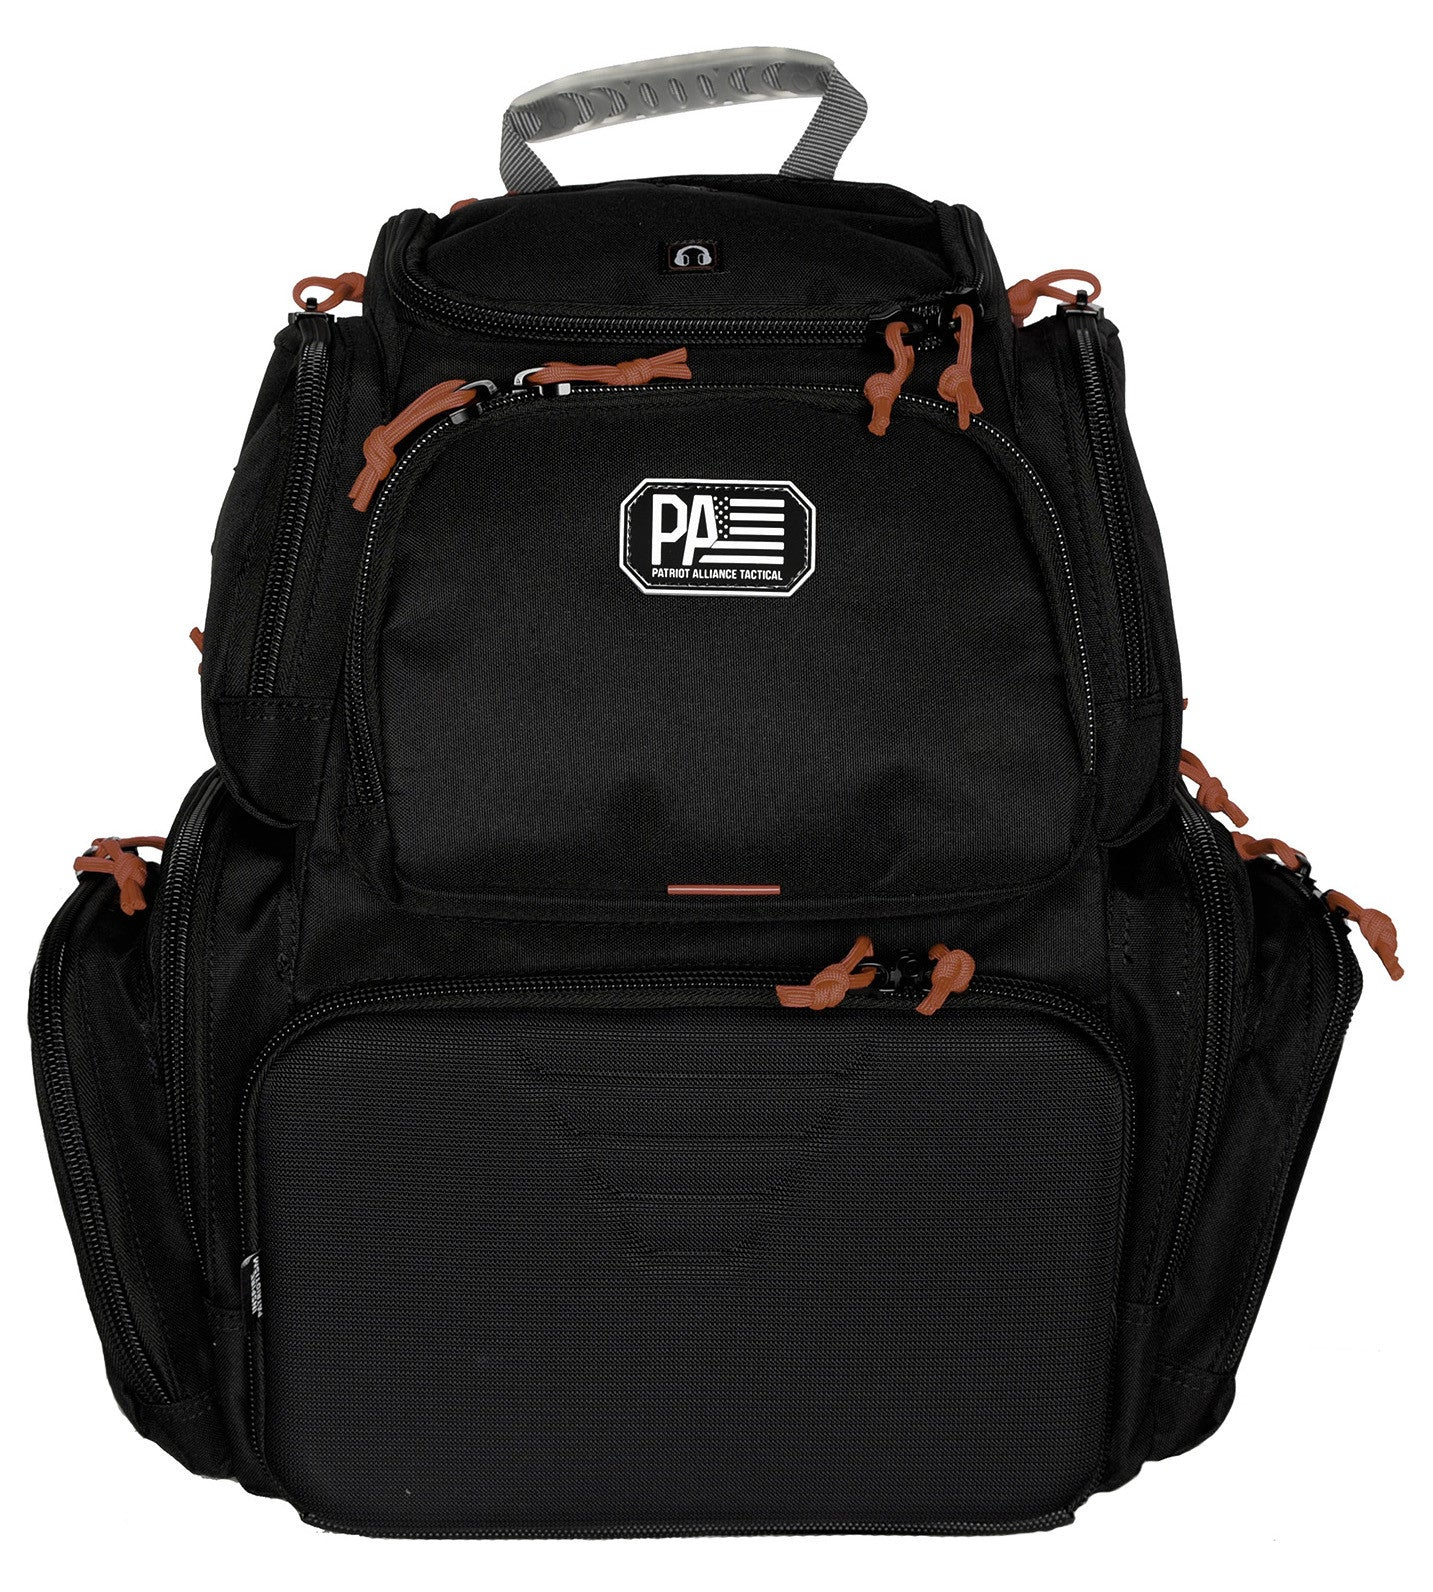 Handgunner Range Backpack, Black